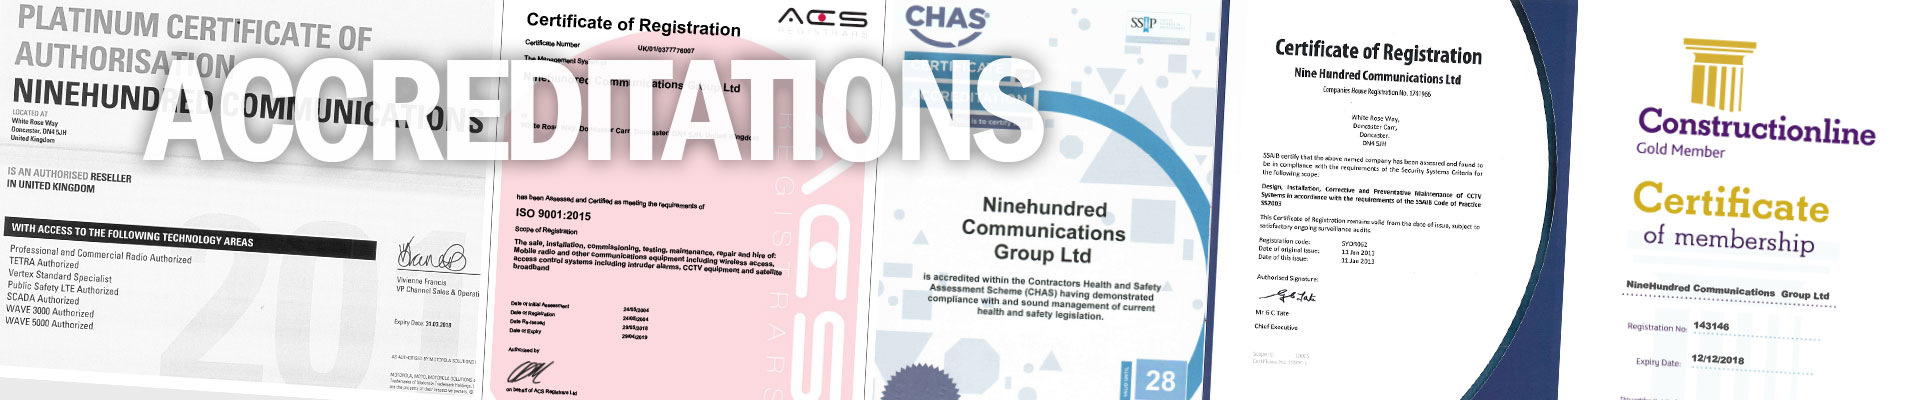 accreditations banner image